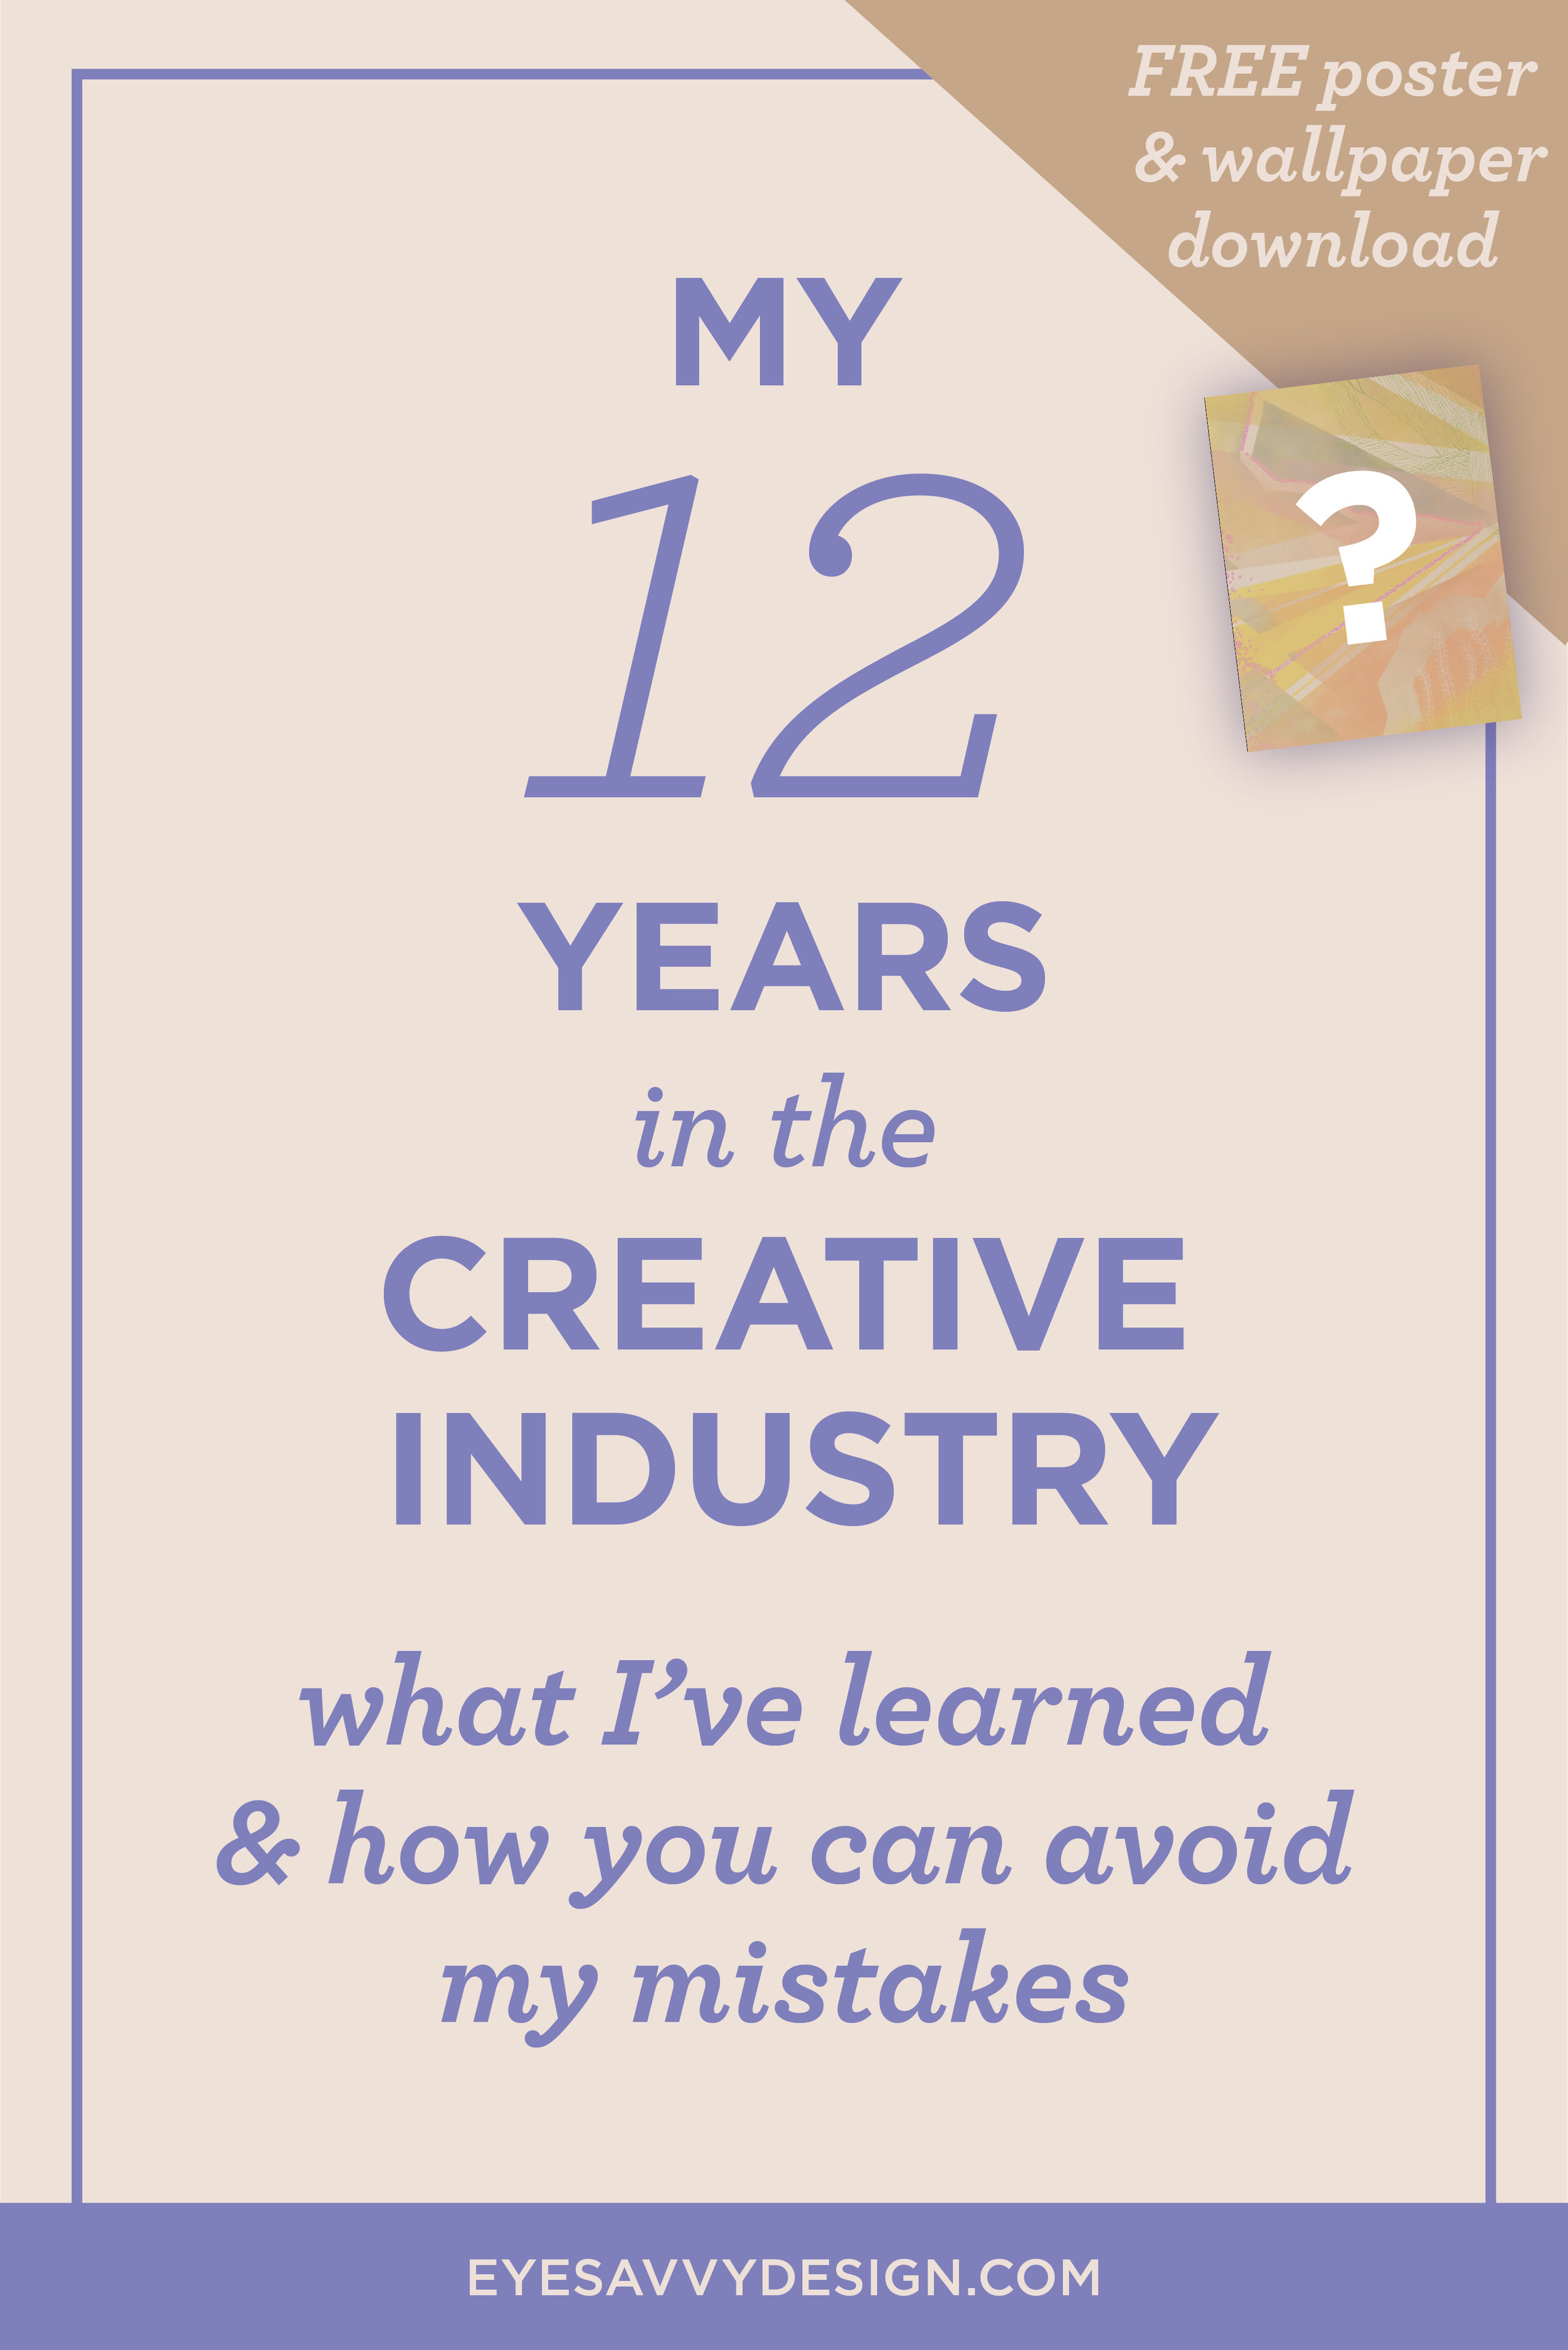 My 12 Years In The Creative Industry: What I've Learned And How You Can Avoid My Mistakes | EyeSavvy Design | Kiki Bakowski | Brand Design, Creative Industry, Lessons Learned, Advice, Avoid My Mistakes, FREE download,  Motivational Poster & desktop Wallpaper Download #freedownload #freewallpaper #creativeindustry #gooddesign#freelancedesigner#branding #branddesign#branding101